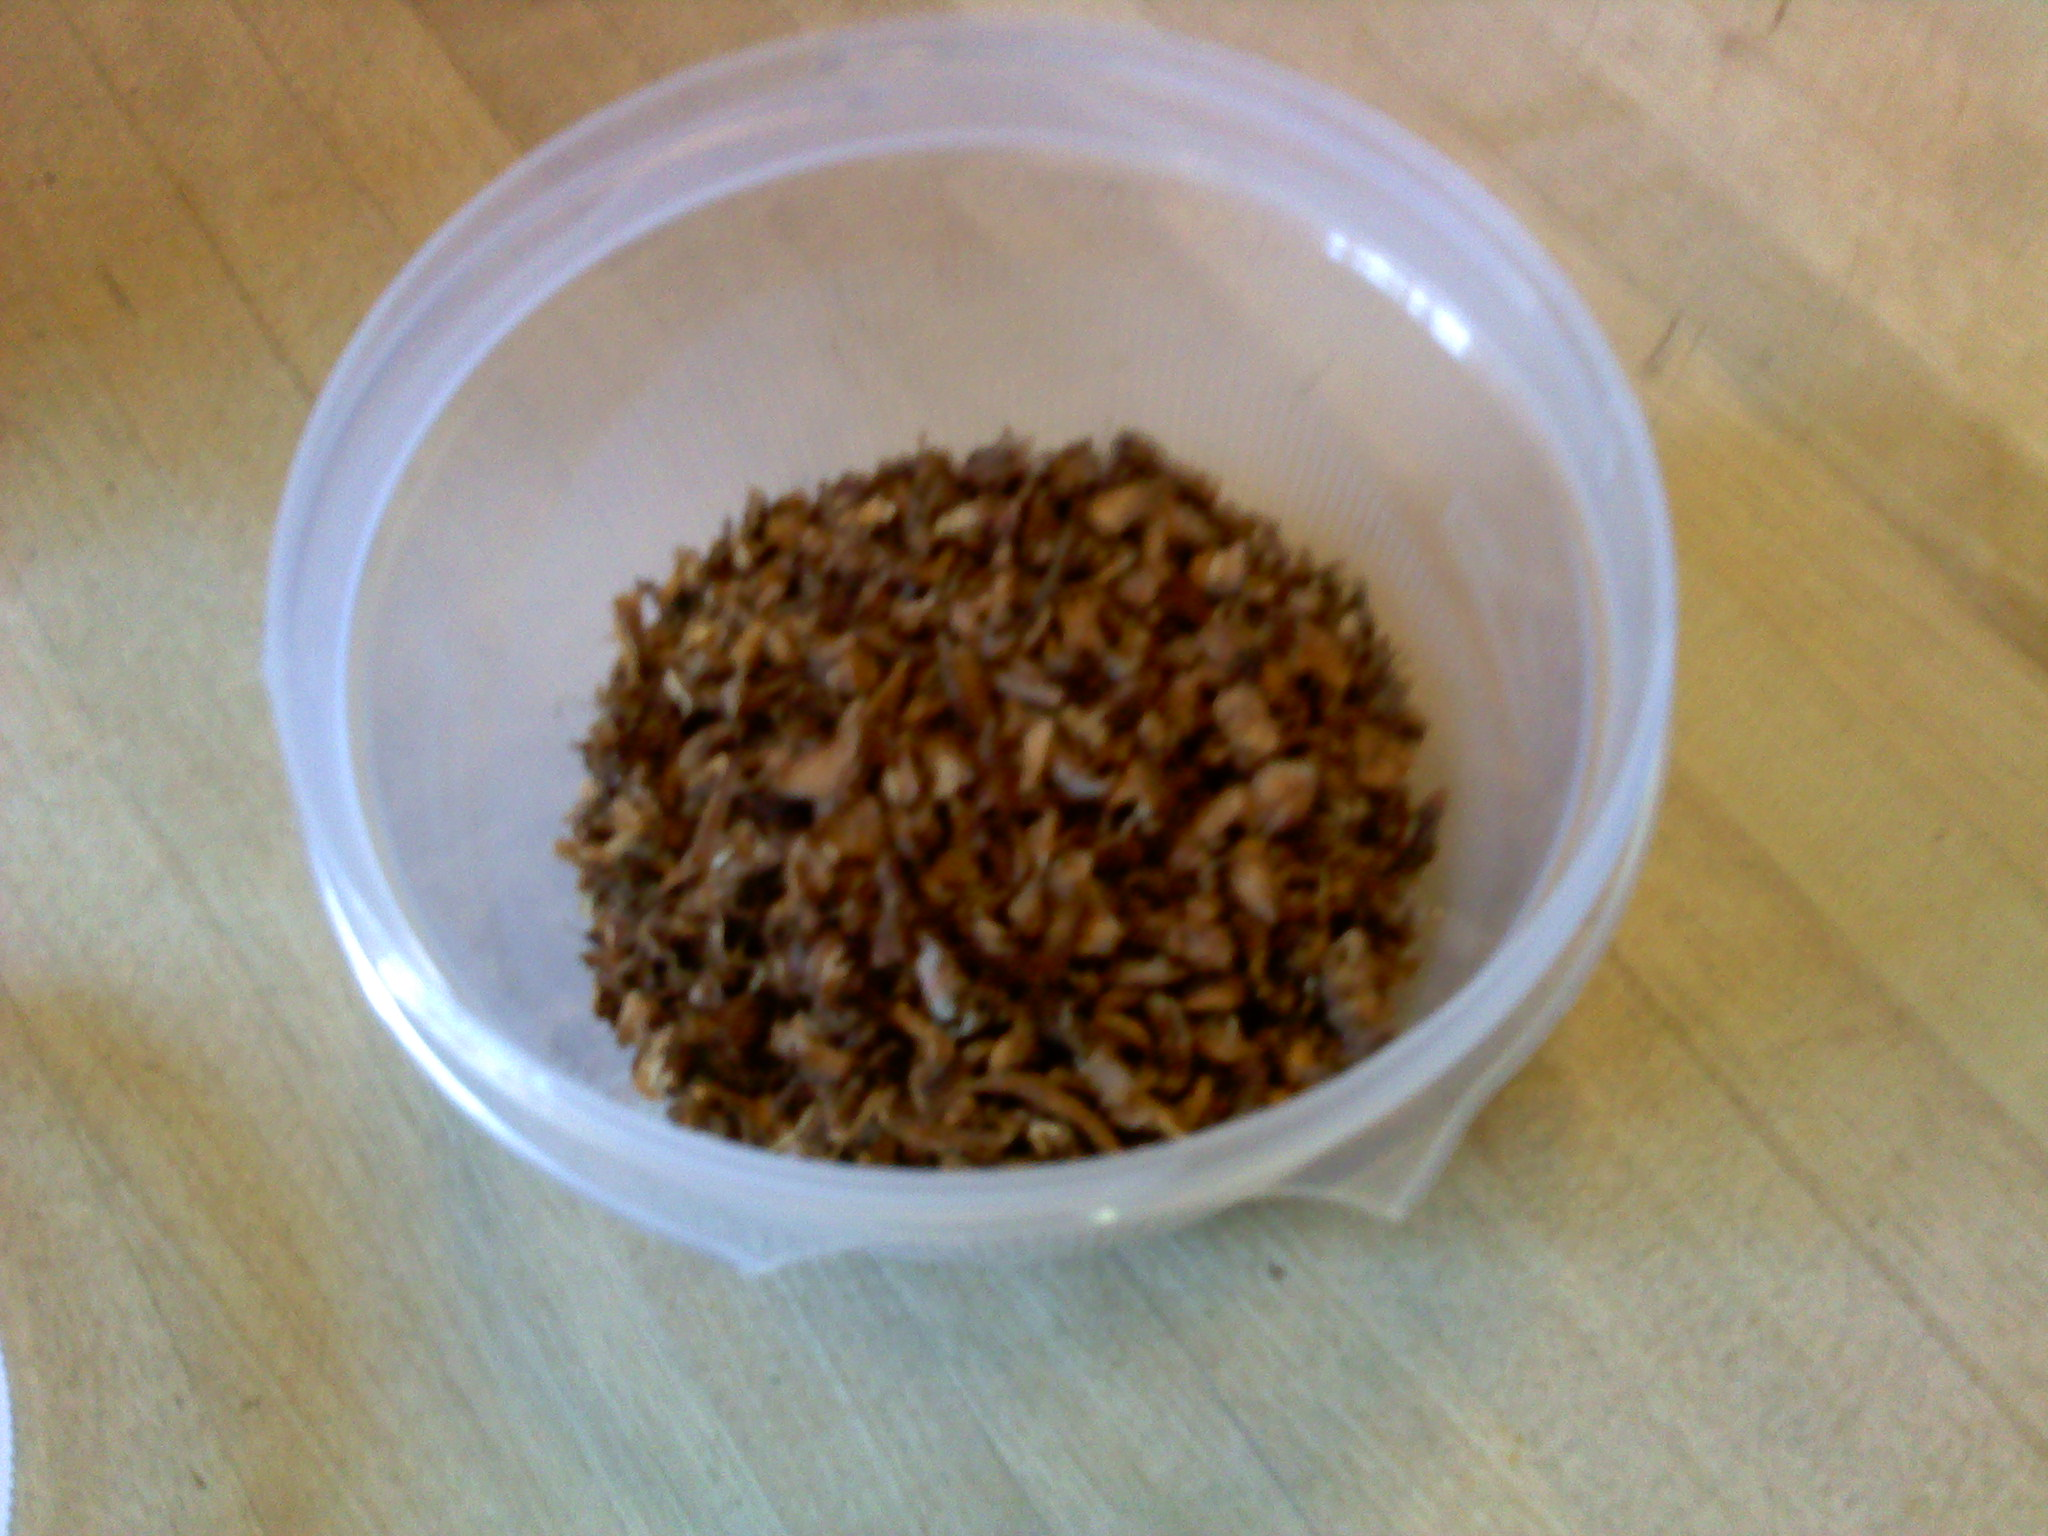 The finished roasted dandelion - about enough for 8 cups of brewed drink